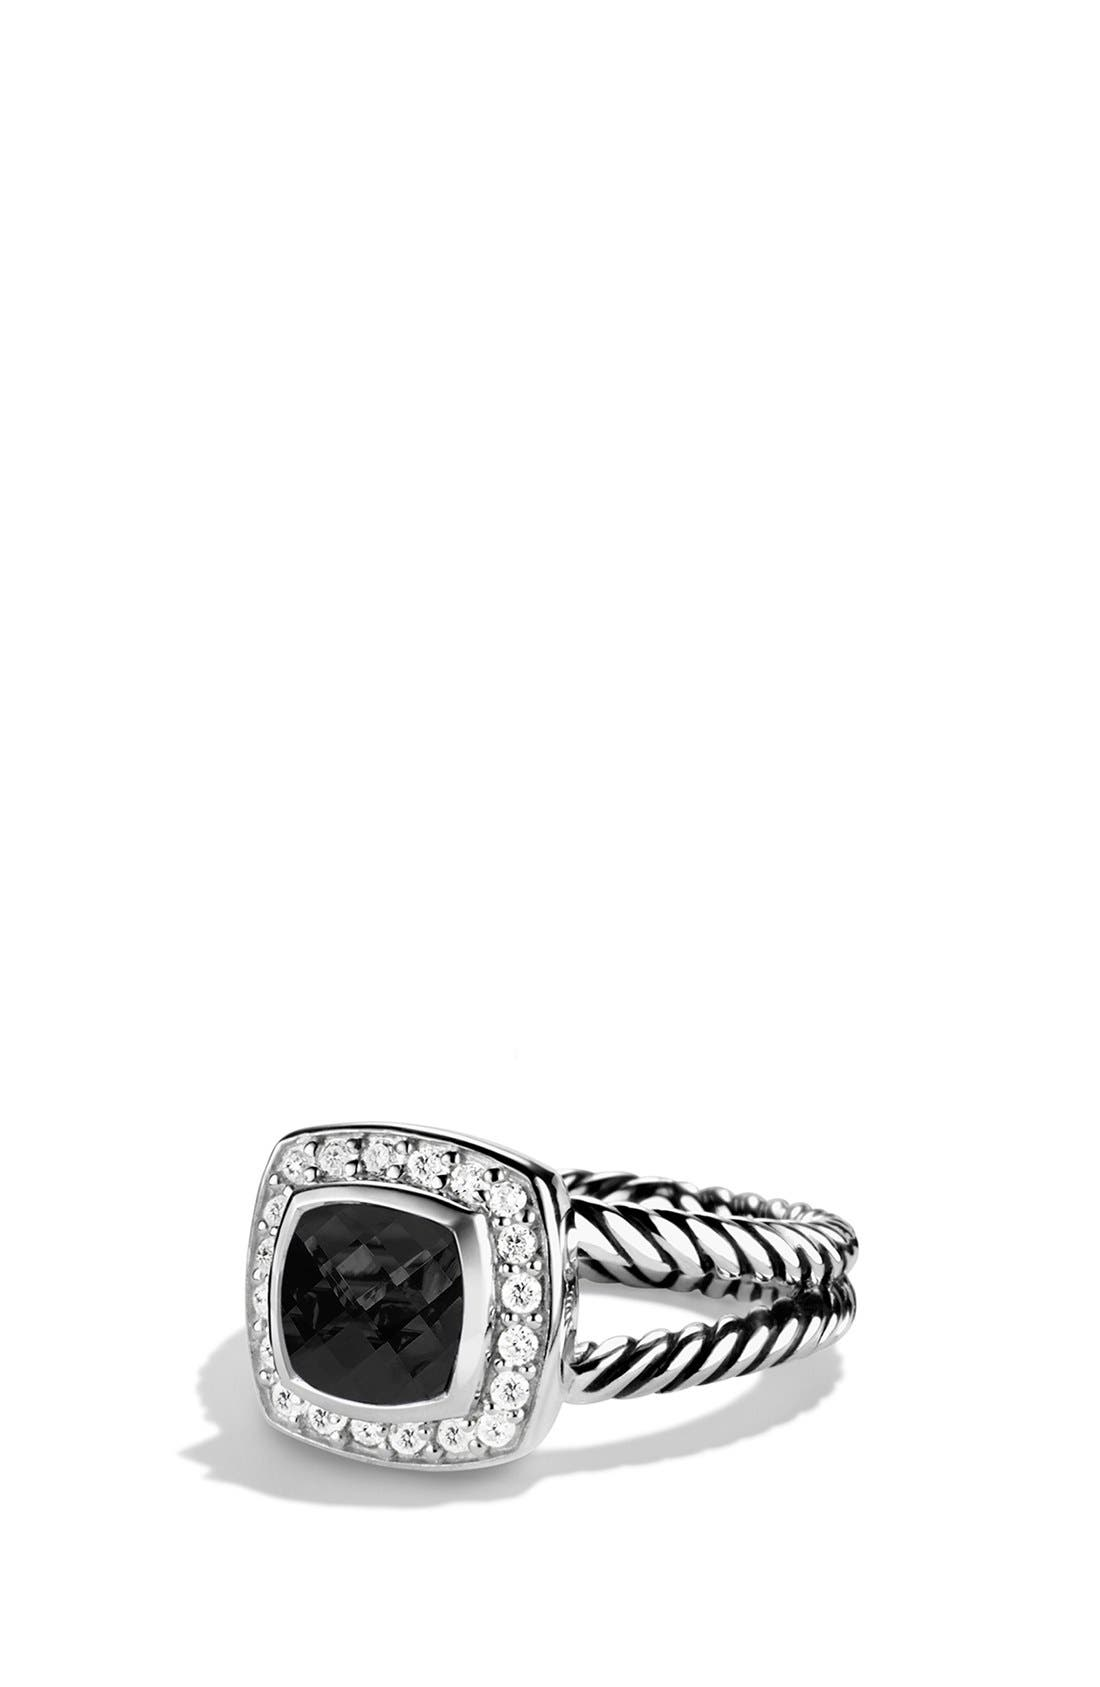 Alternate Image 1 Selected - David Yurman 'Albion' Petite Ring with Semiprecious Stone & Diamonds